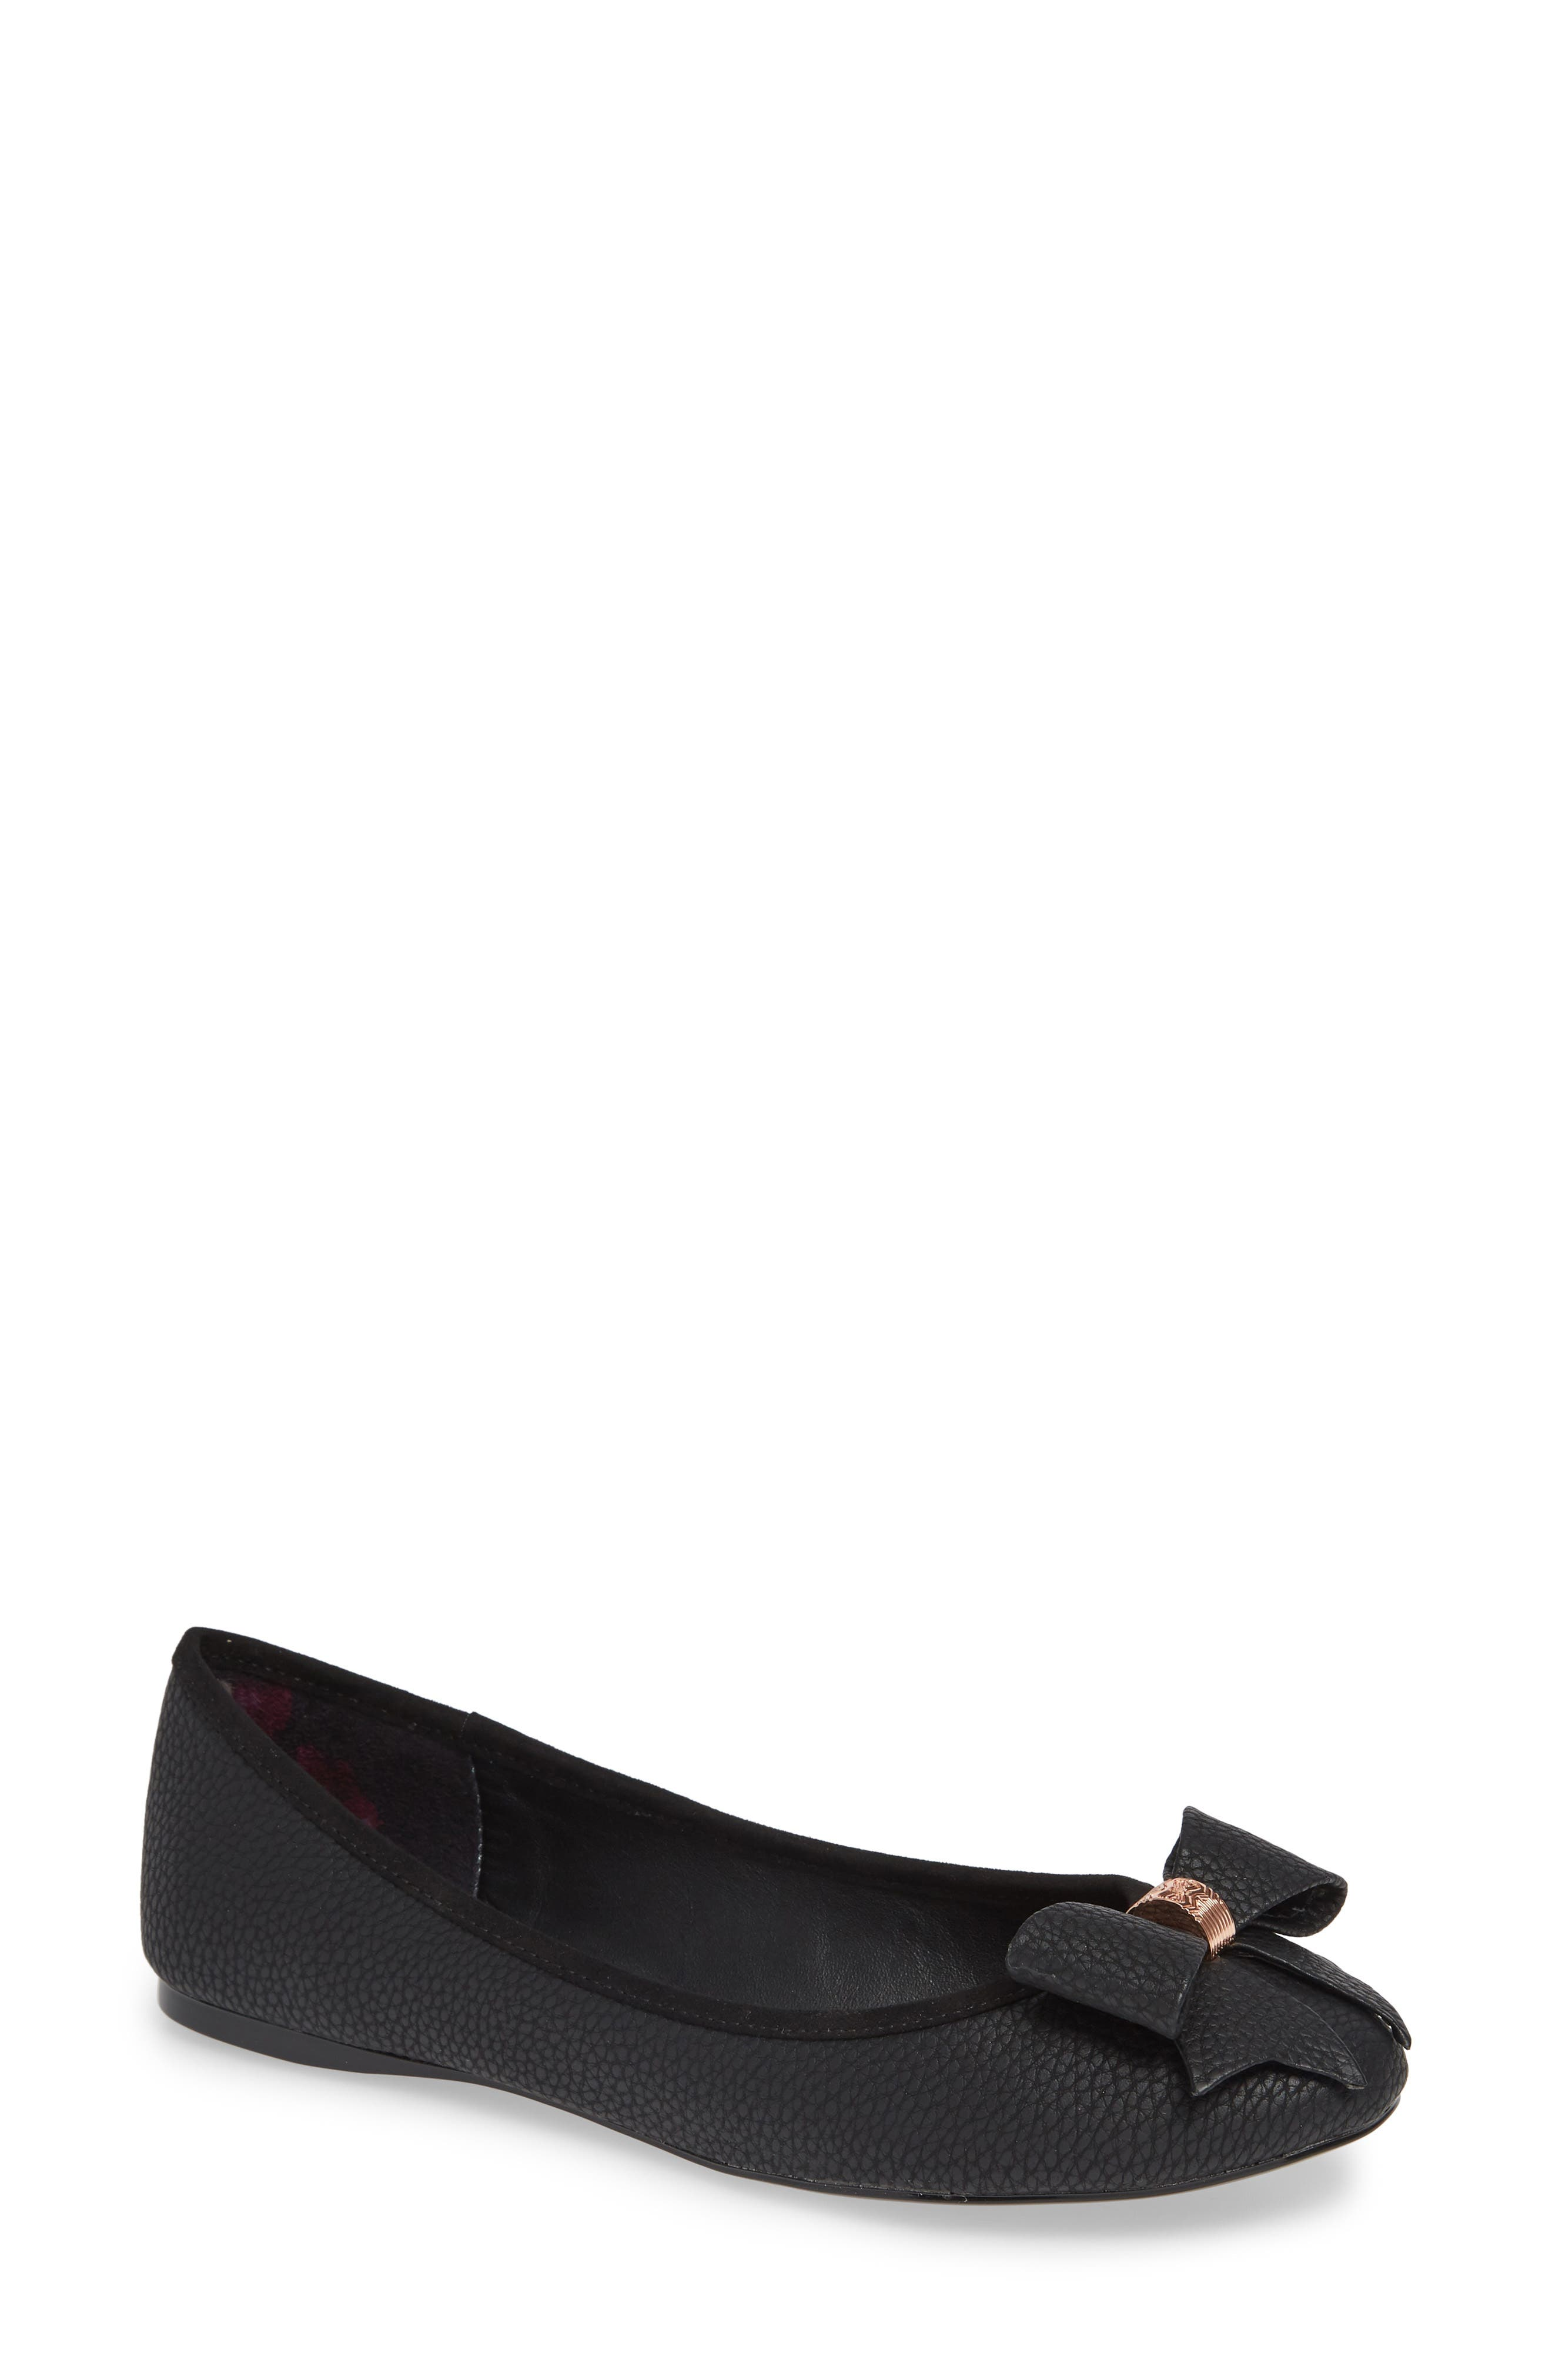 Ted Baker London Sually Flat - Black